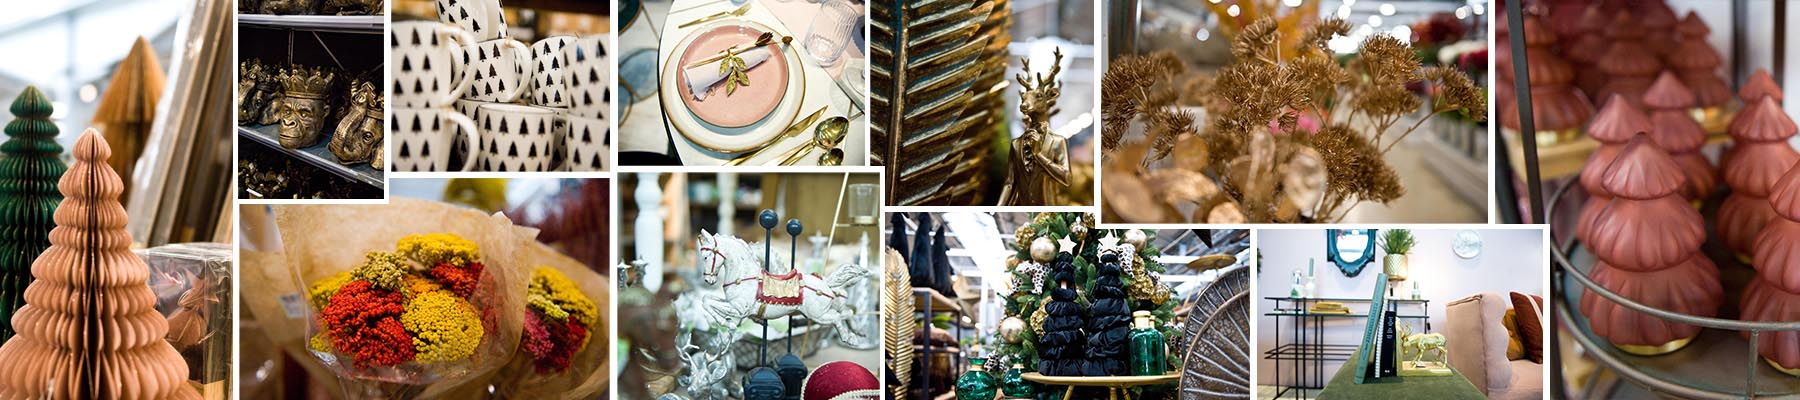 Kerst_trend_musthaves